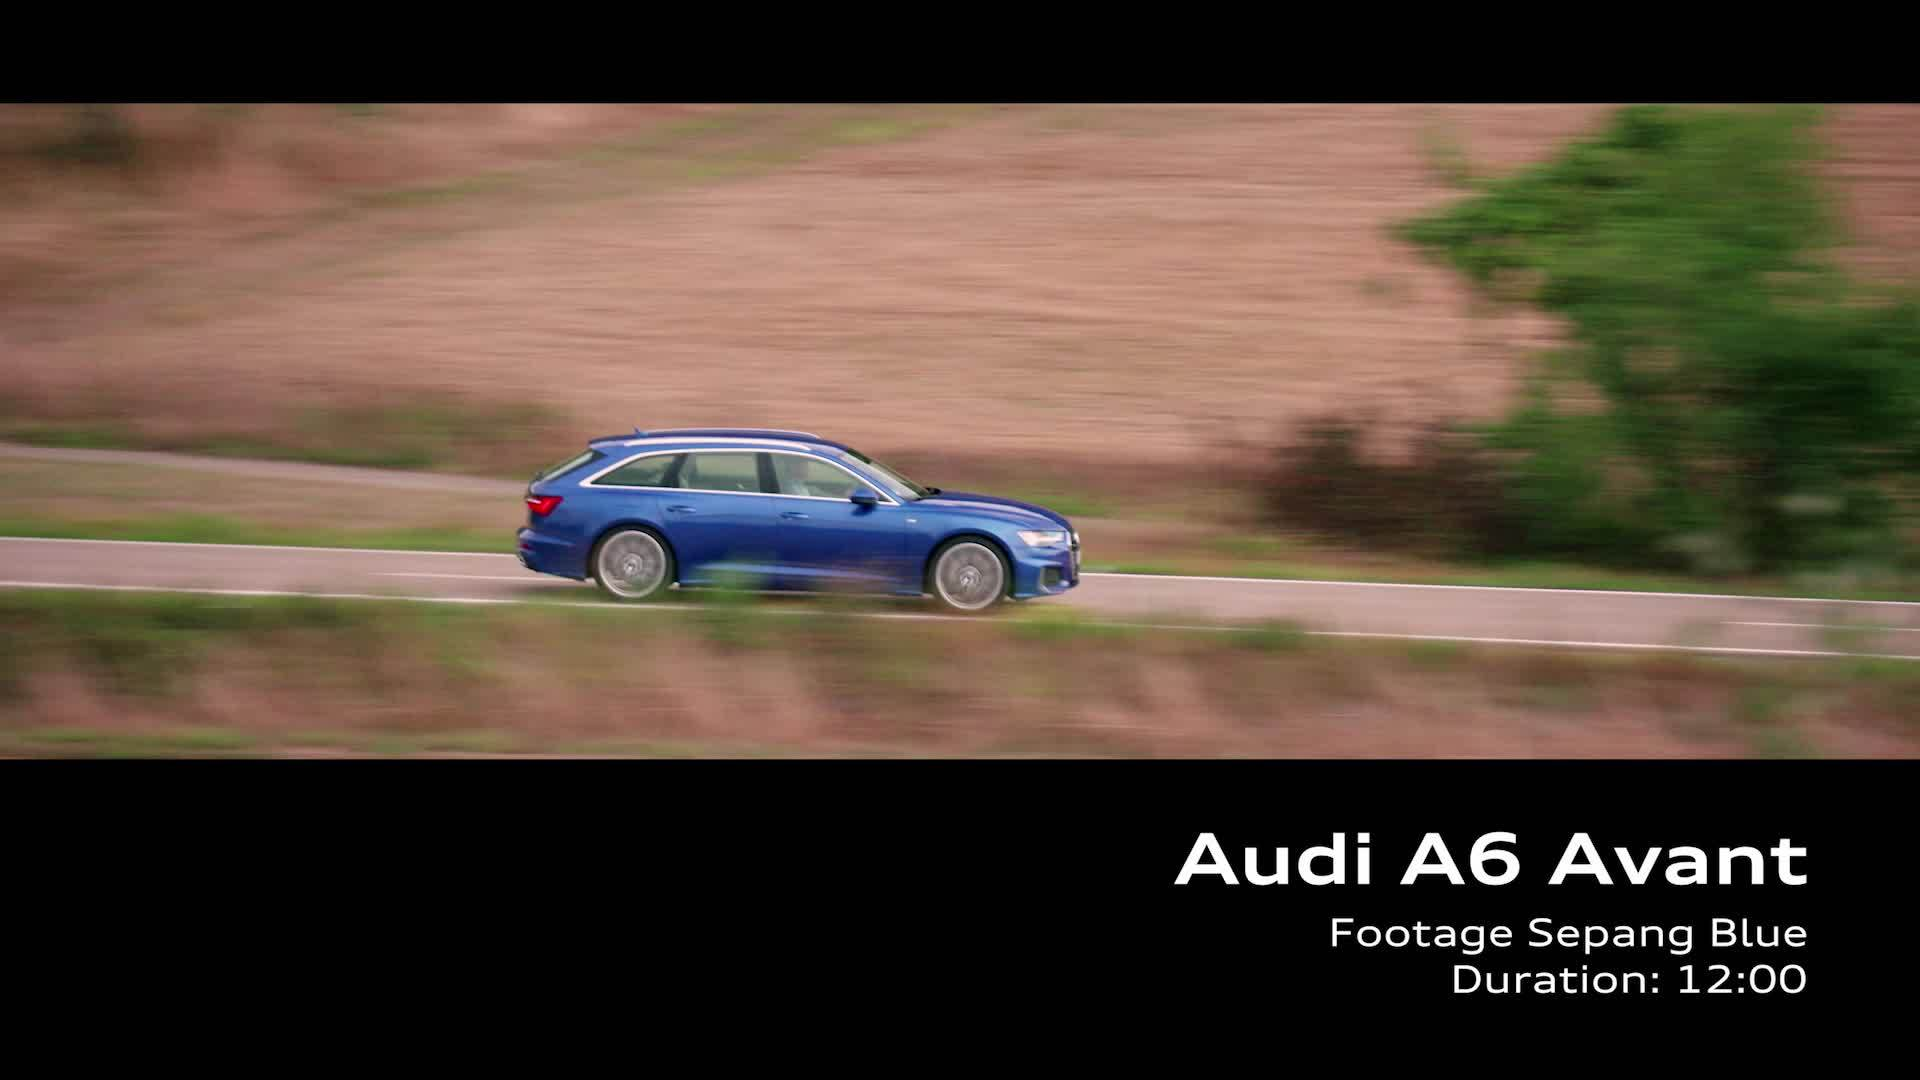 Audi A6 Avant – on Location Footage Sepang Blue